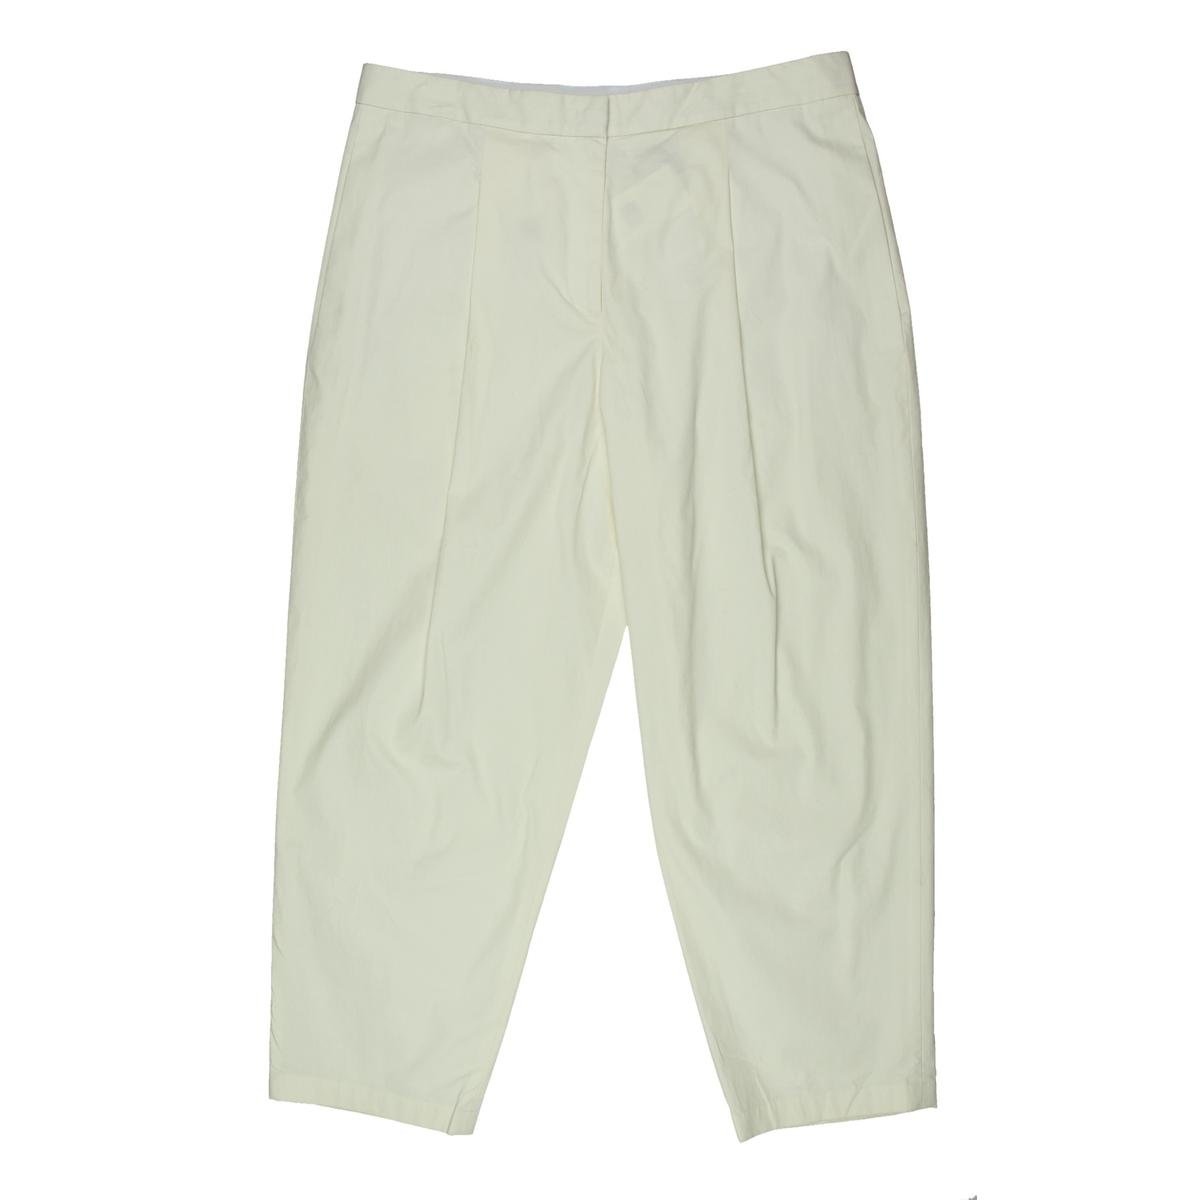 DKNY Womens Cotton Pleated Cropped Pants Ivory 6